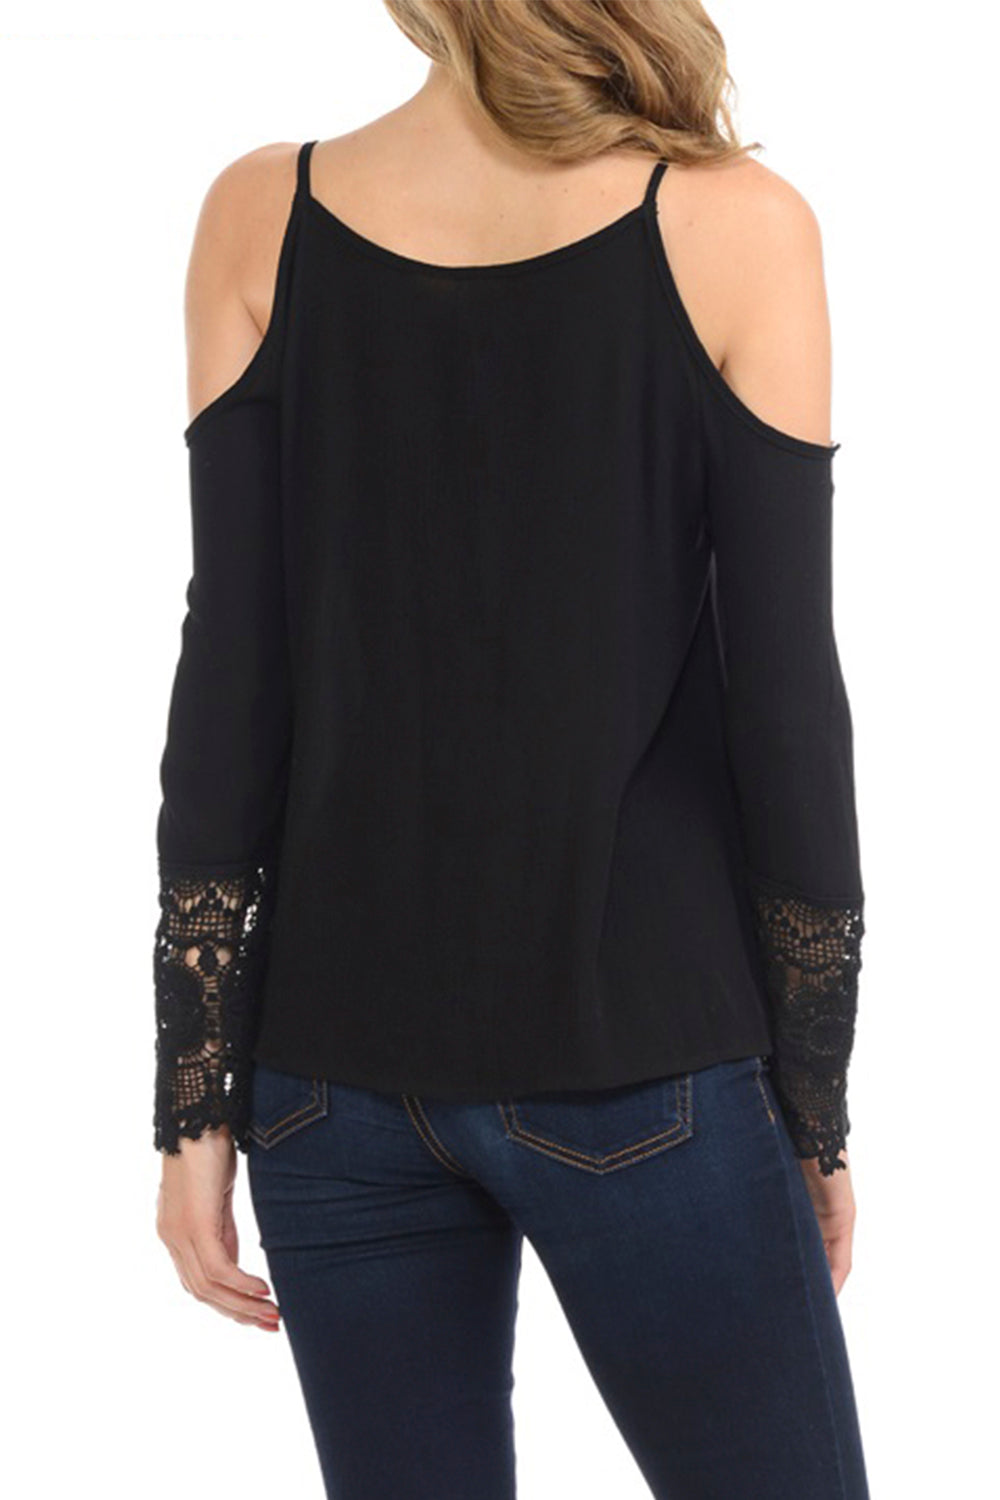 Cold Shoulder Criss Cross Detail Lace Sleeve Top | 2 Colors Available